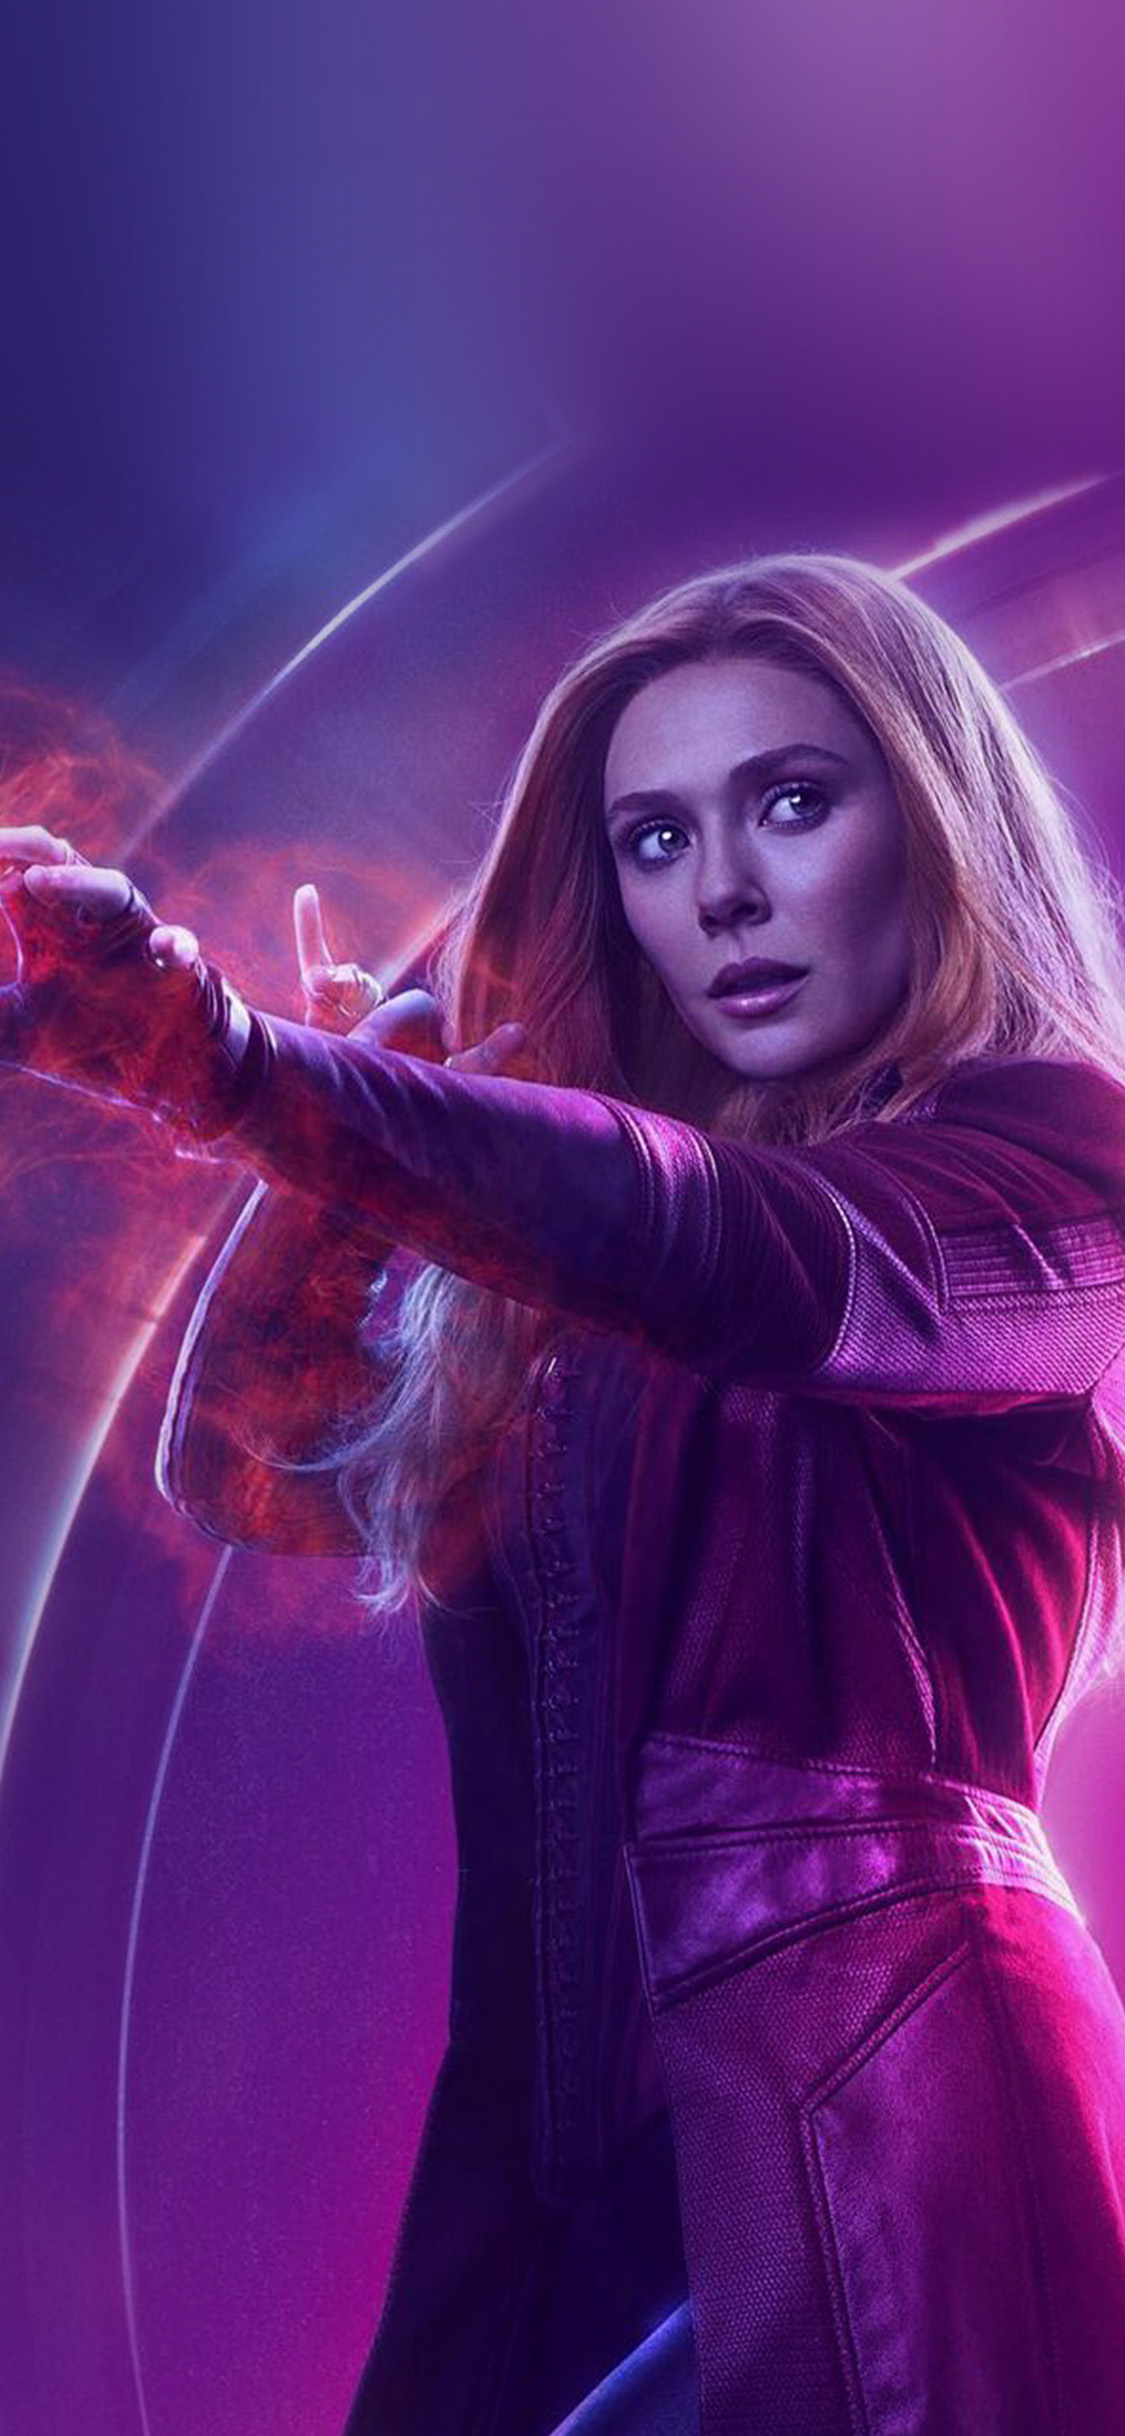 iPhonexpapers.com-Apple-iPhone-wallpaper-be91-scarlet-witch-avengers-film-hero-marvel-art